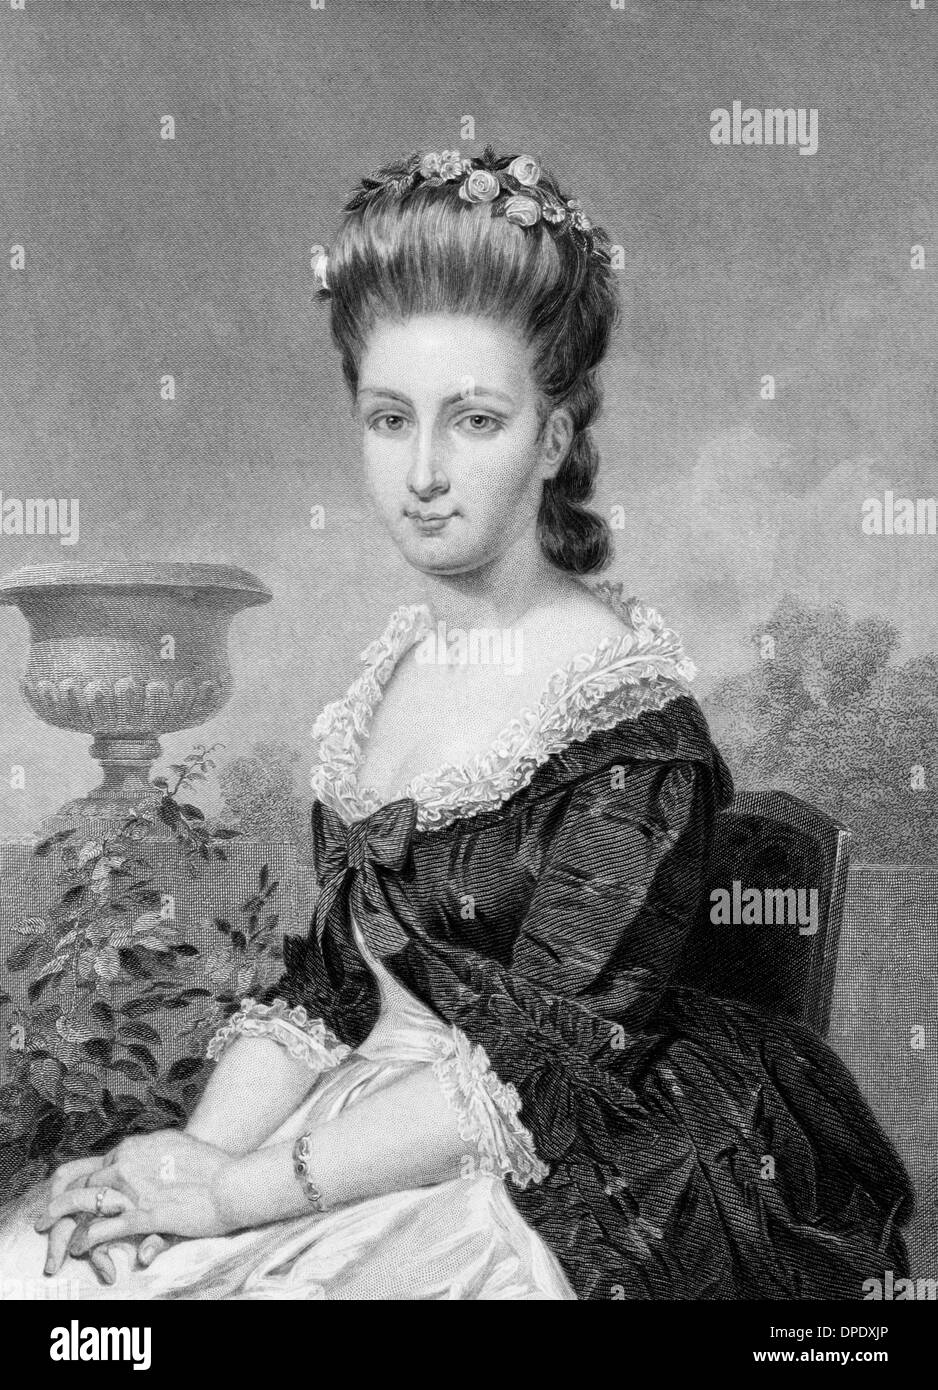 Sarah Van Brugh Livingston (1756-1802) on engraving from 1873. Wife of the first chief of justice of the USA. Stock Photo